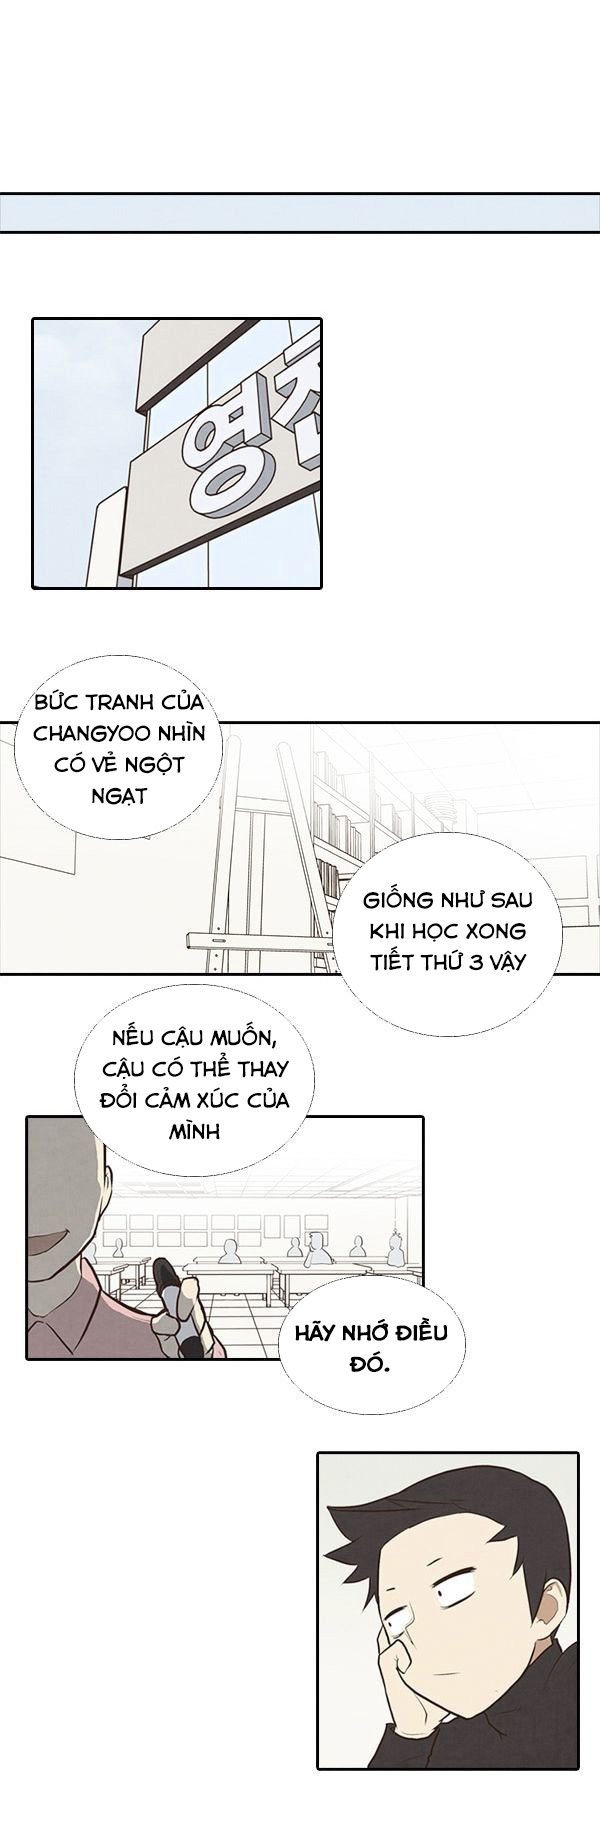 How To Open A Triangular Riceball Chap 8 Trang 13